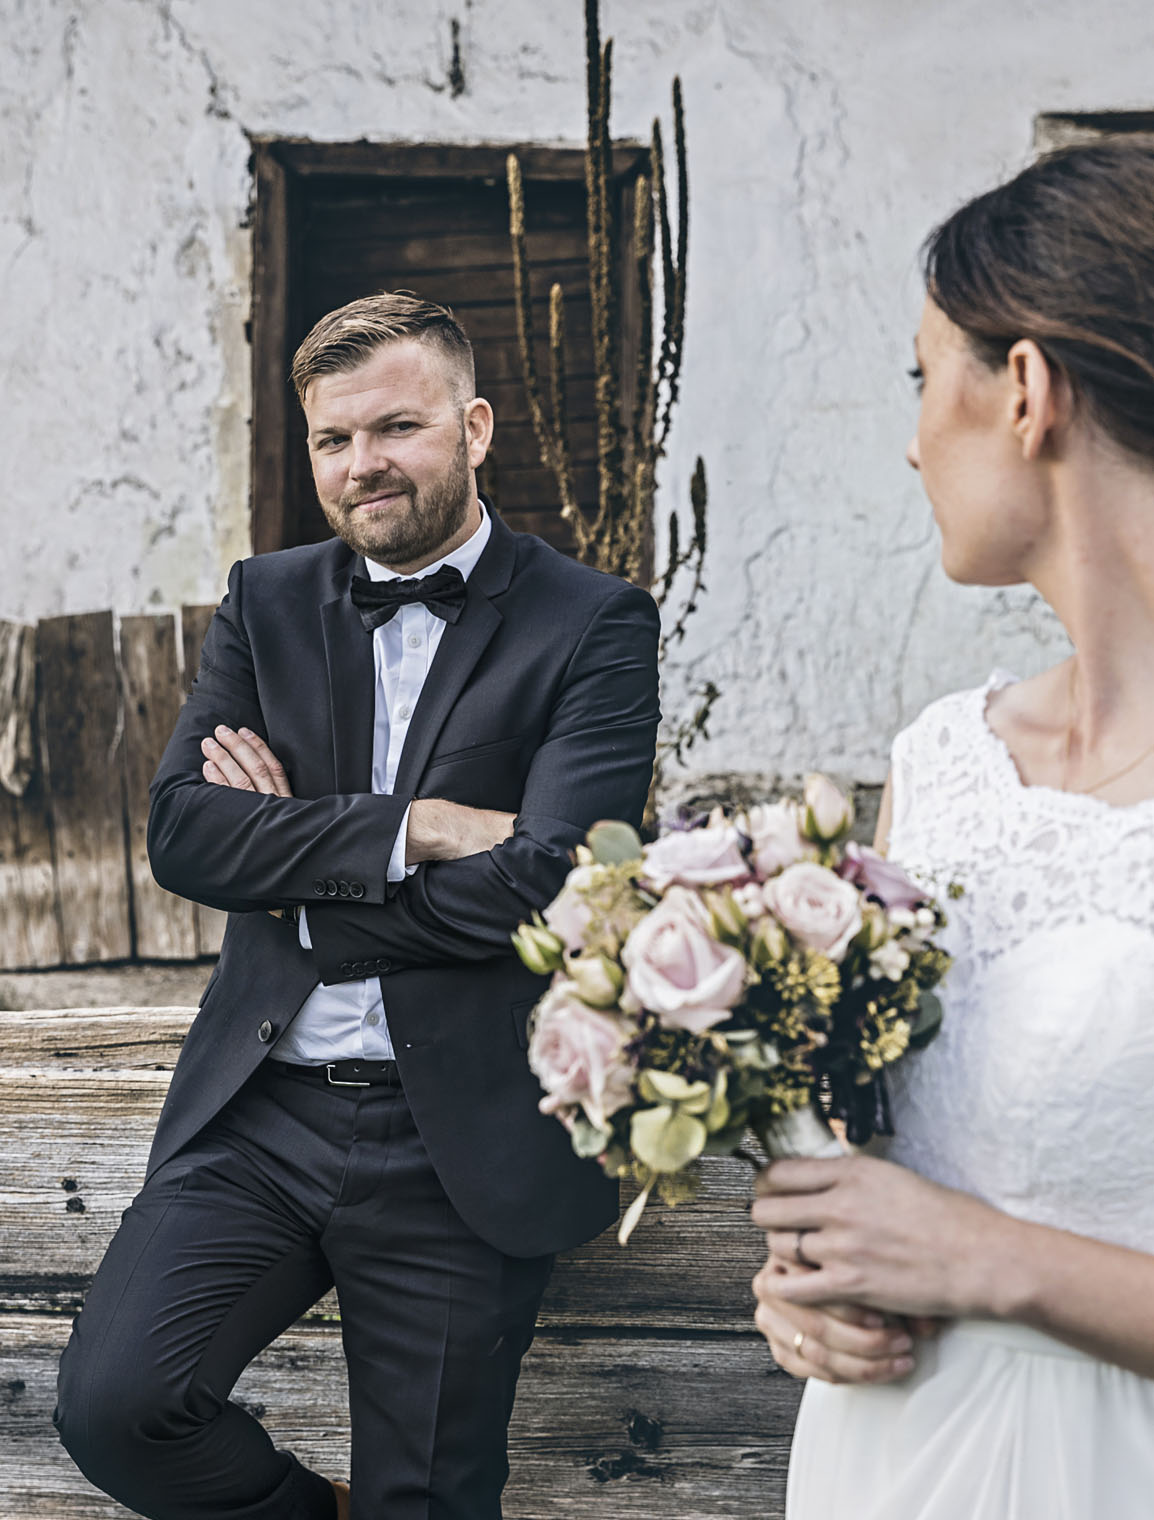 wedding_thomas_simone_bride_braut_groom_bräutigam_stable2